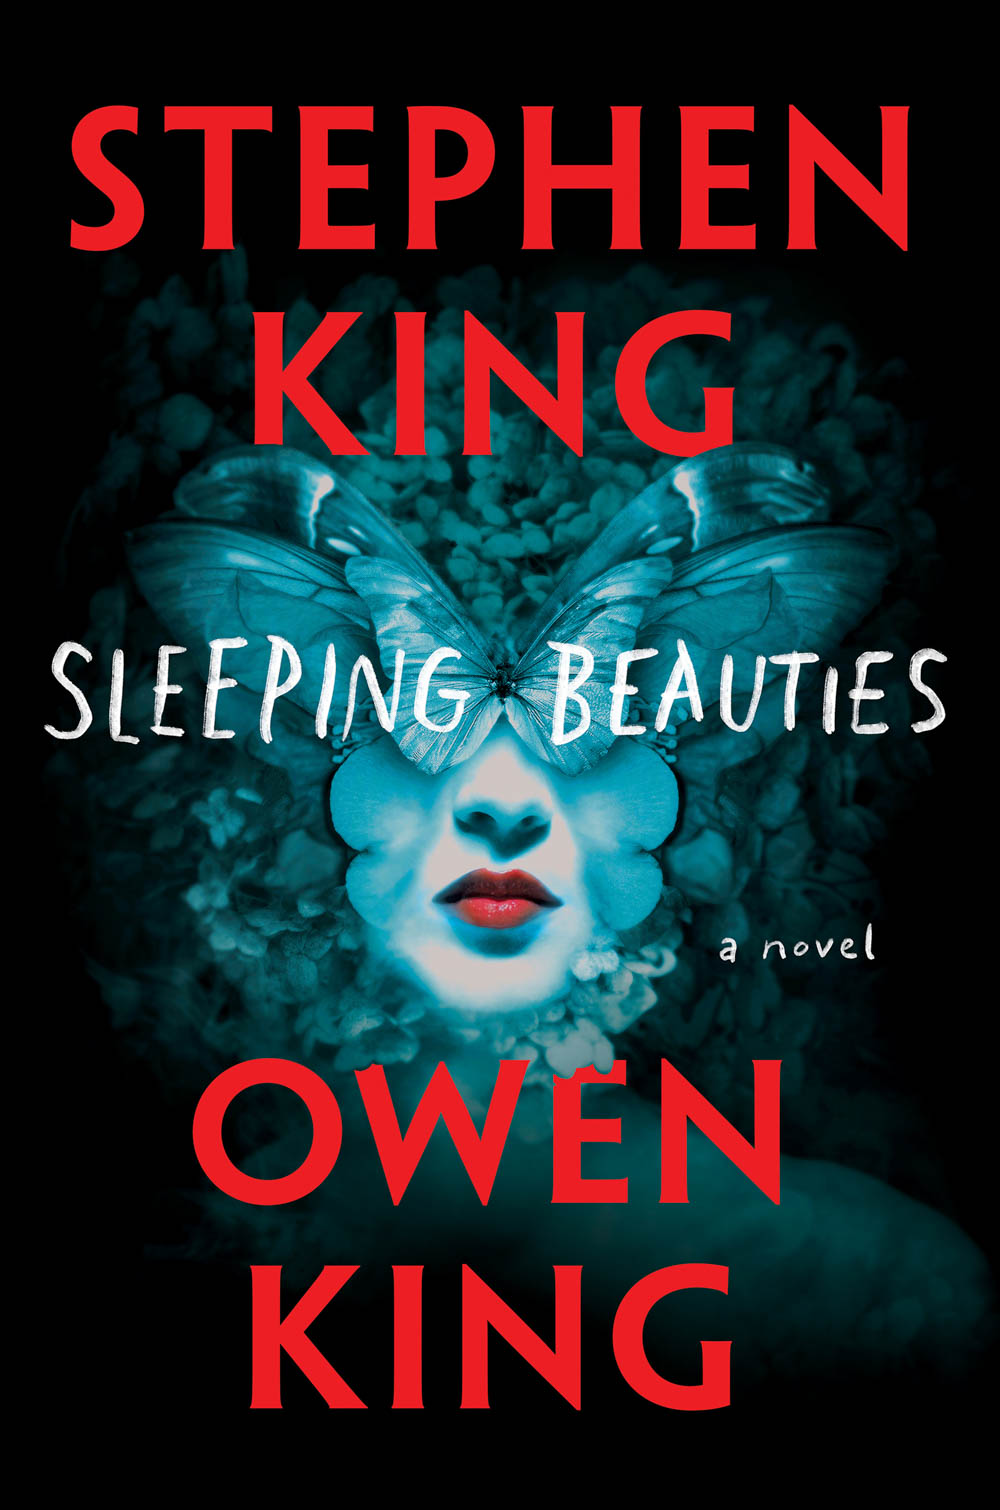 SLEEPING BEAUTIES: A NOVEL by Stephen King, Owen King